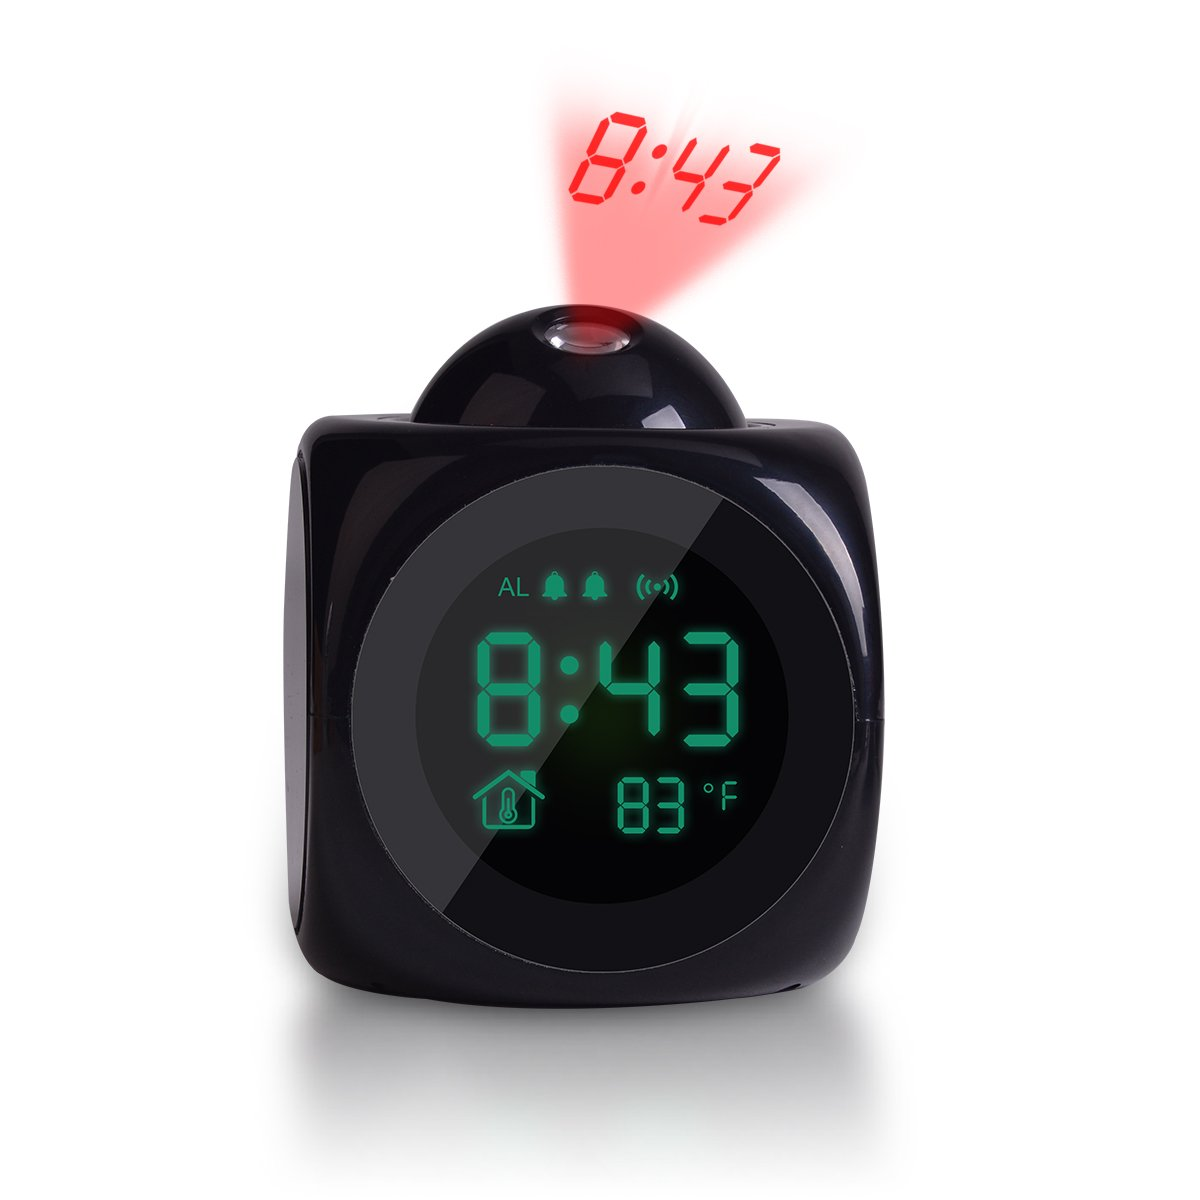 Amazoncom TechKen Projection Alarm Clock Voice Alarm